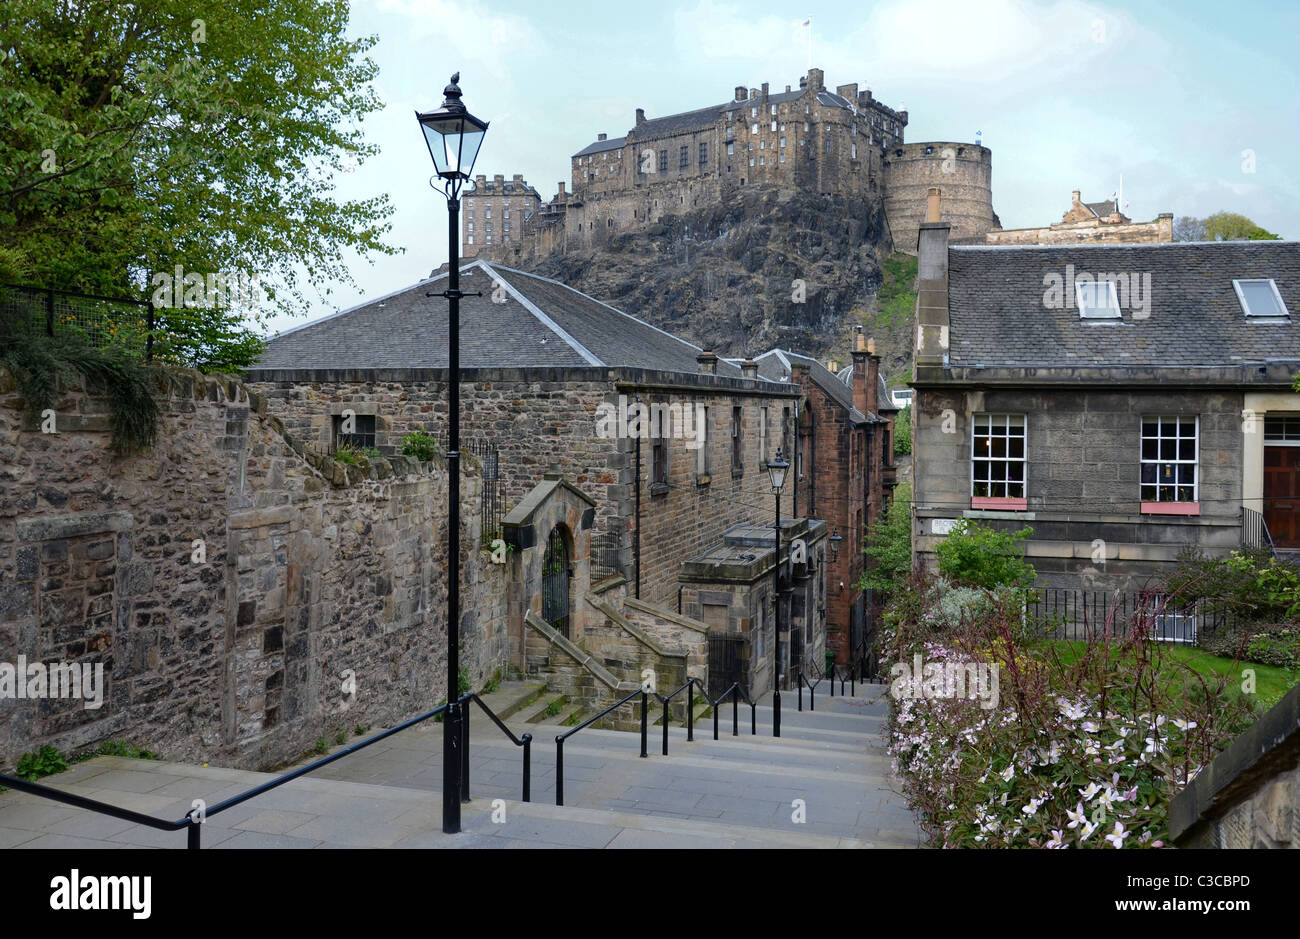 Edinburgh Castle photographed from The Vennel in the Old Town. Stock Photo